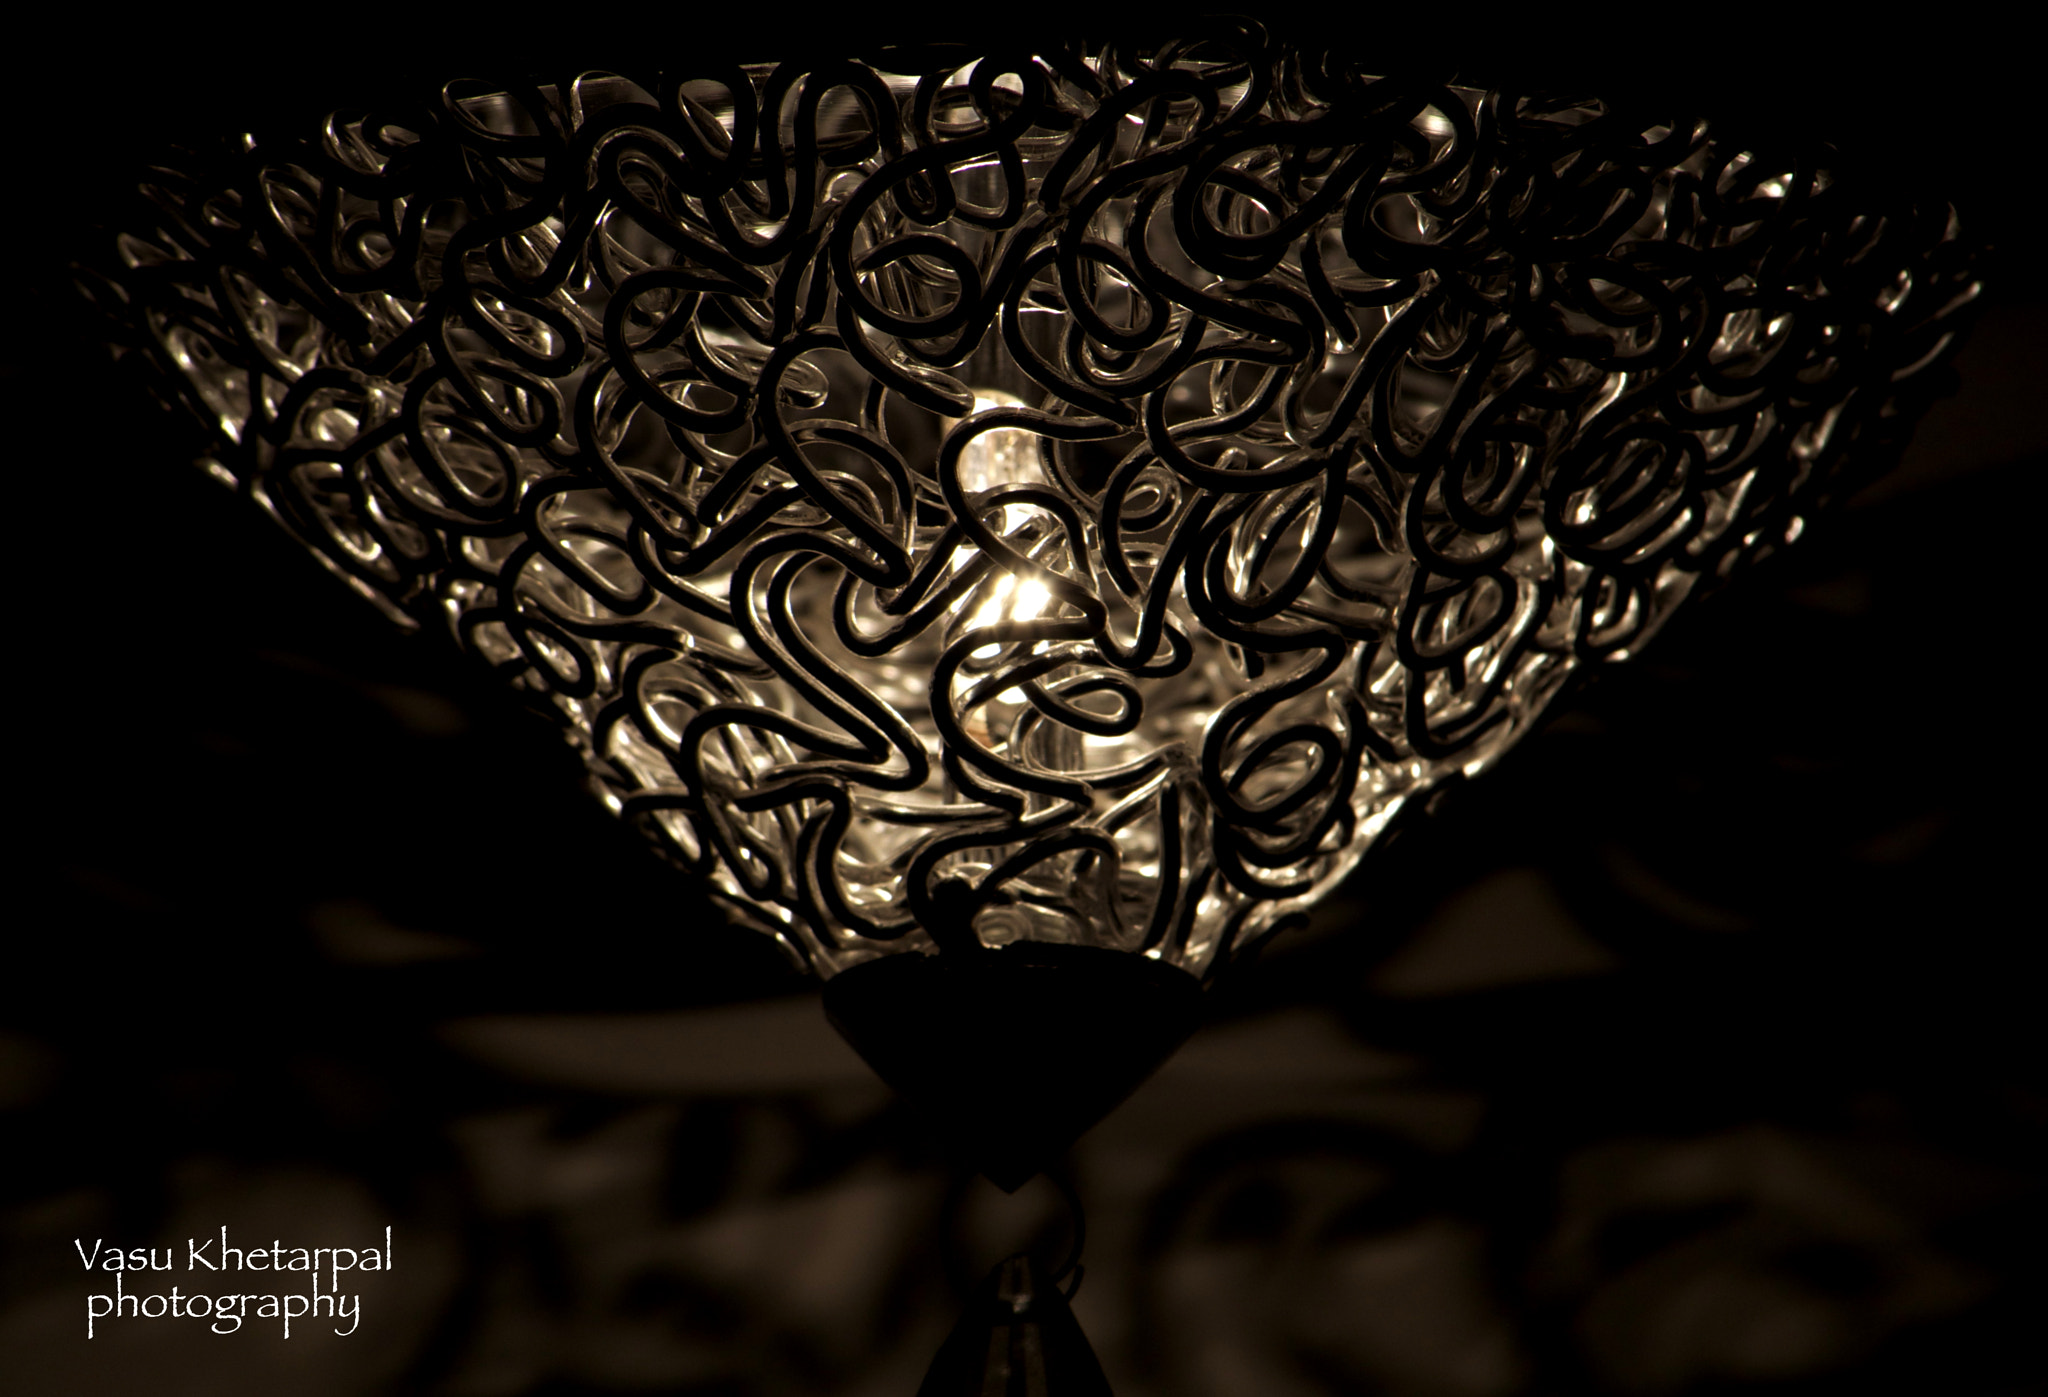 Photograph trapped  by Vasu Khetarpal on 500px